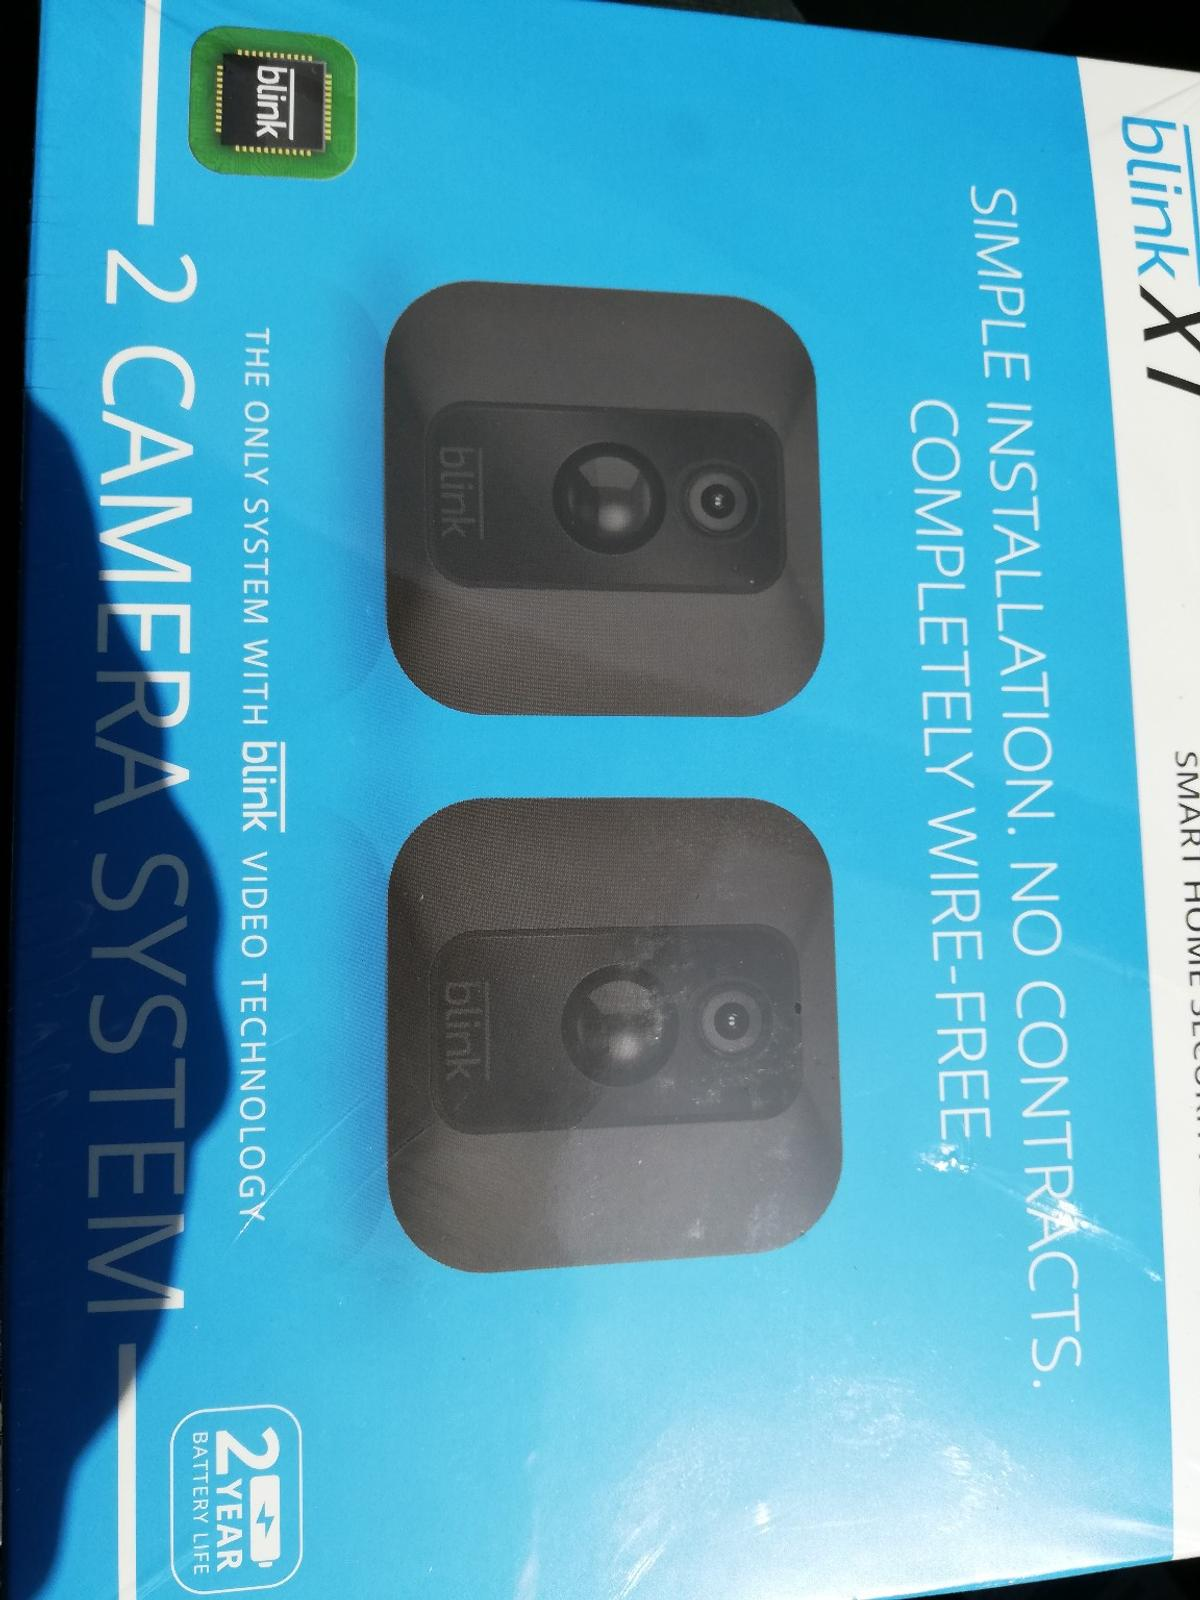 BLINK XT SMART HOME SECURITY CAMERA SYSTEM